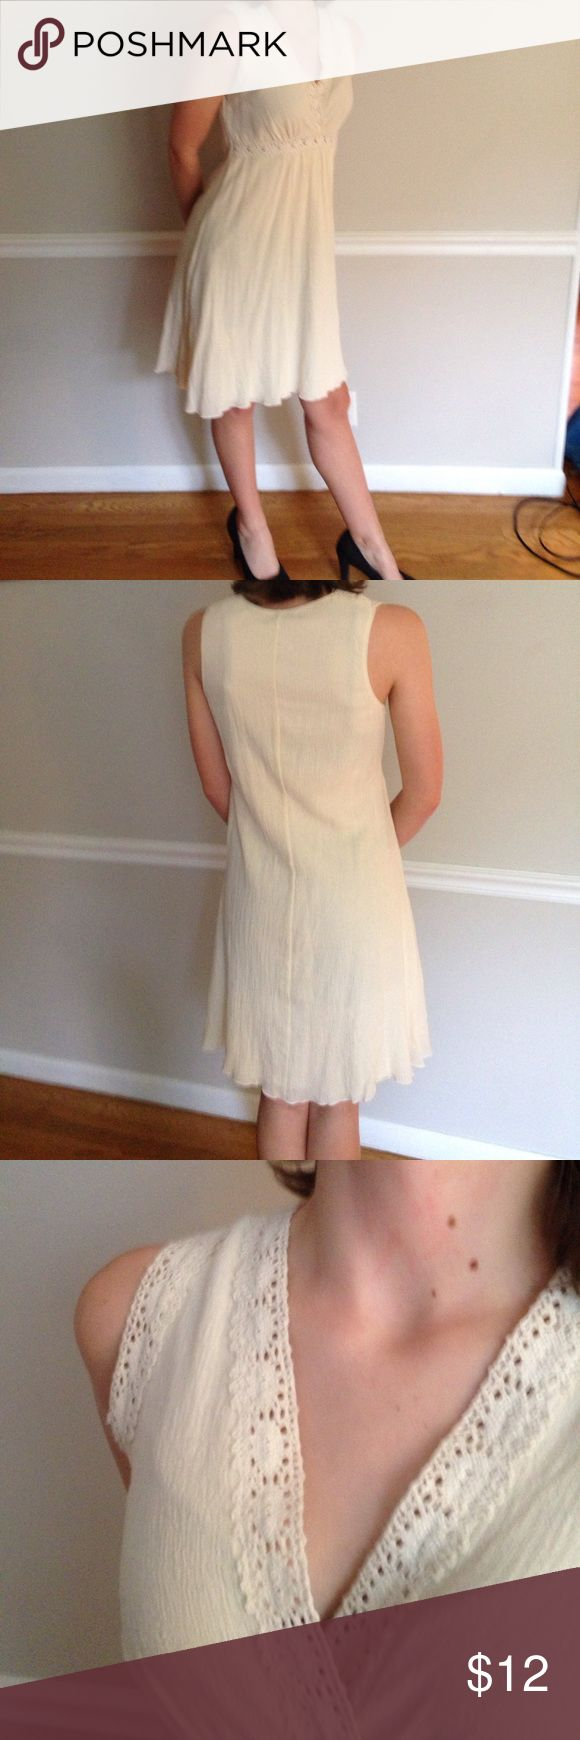 Violet brand cream summer dress Cream colored summer dress, light and airy. Crocheted lace trim. Great condition. Violet Dresses Midi